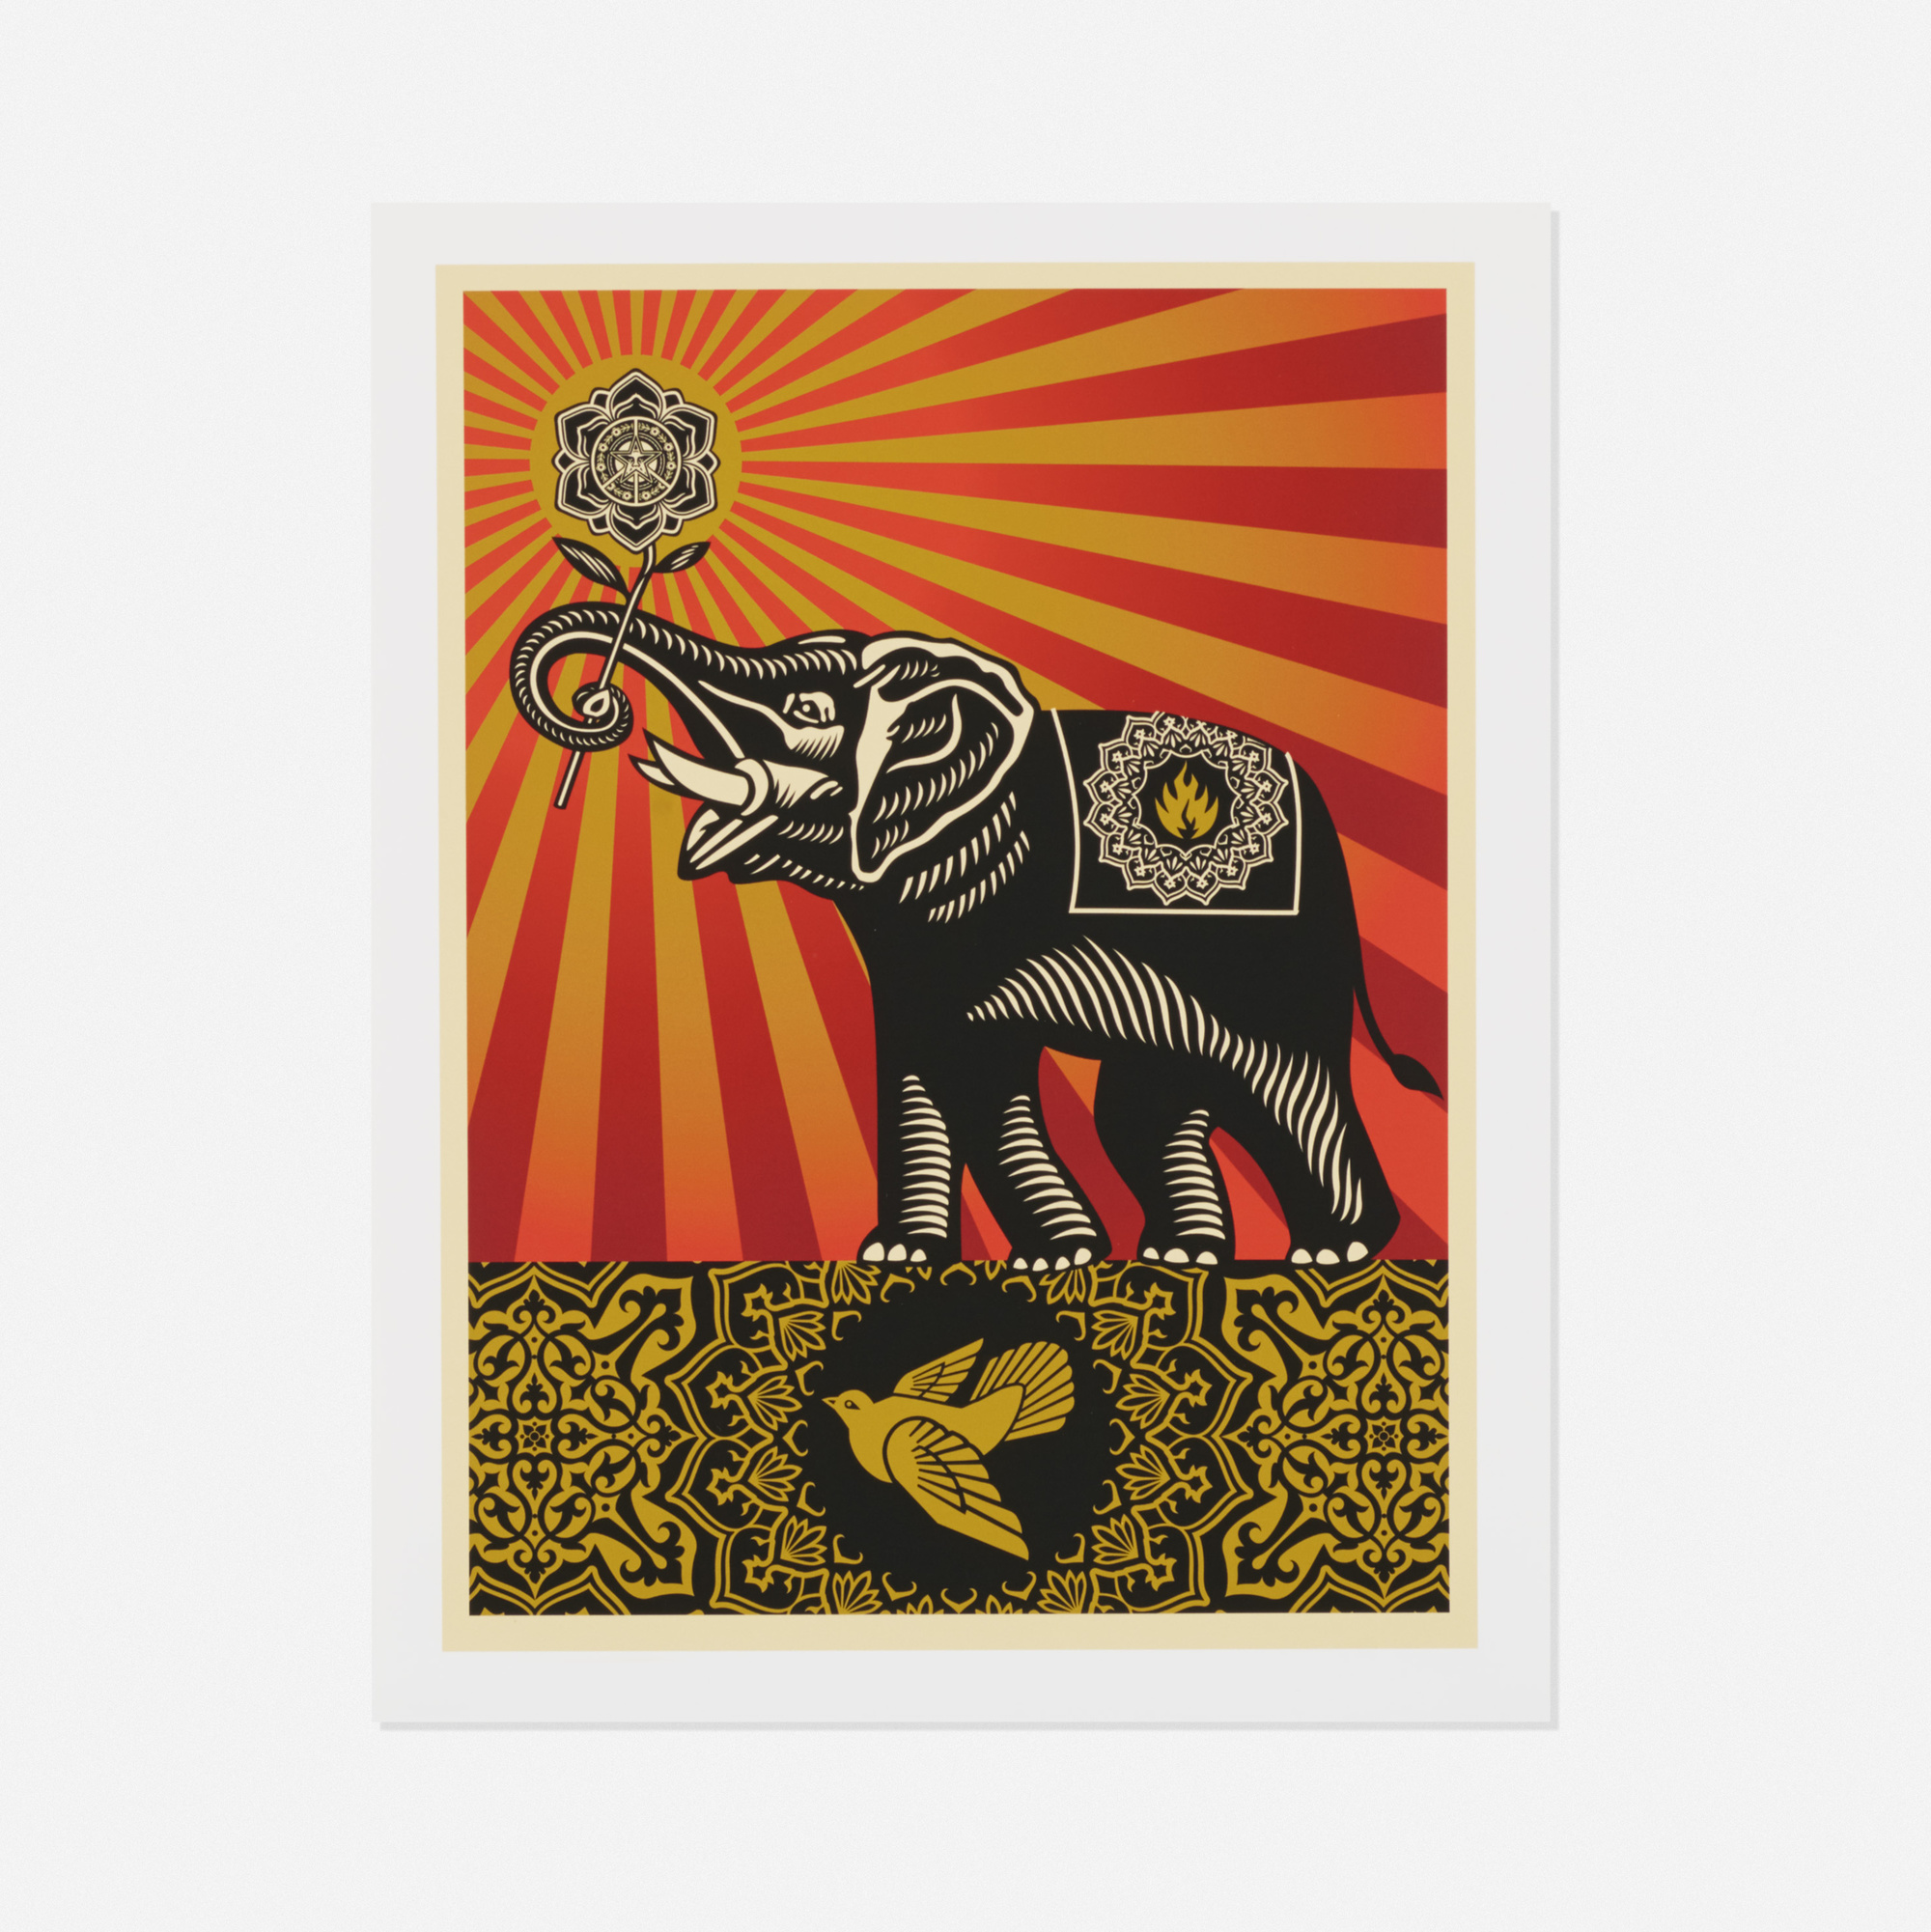 252: SHEPARD FAIREY, Peace Elephant